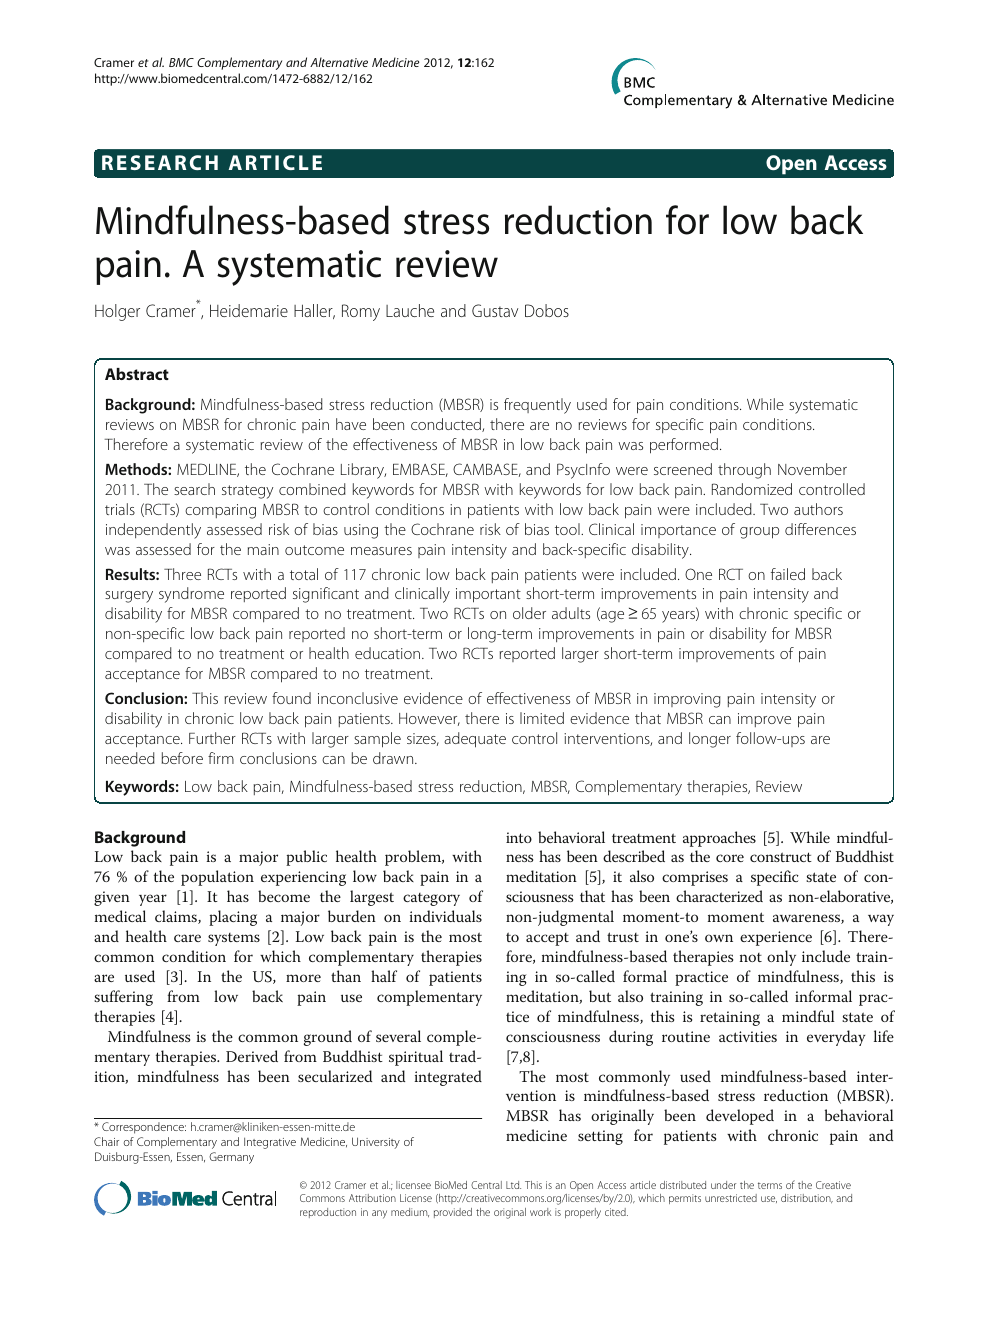 Mindfulness-based stress reduction for low back pain  A systematic